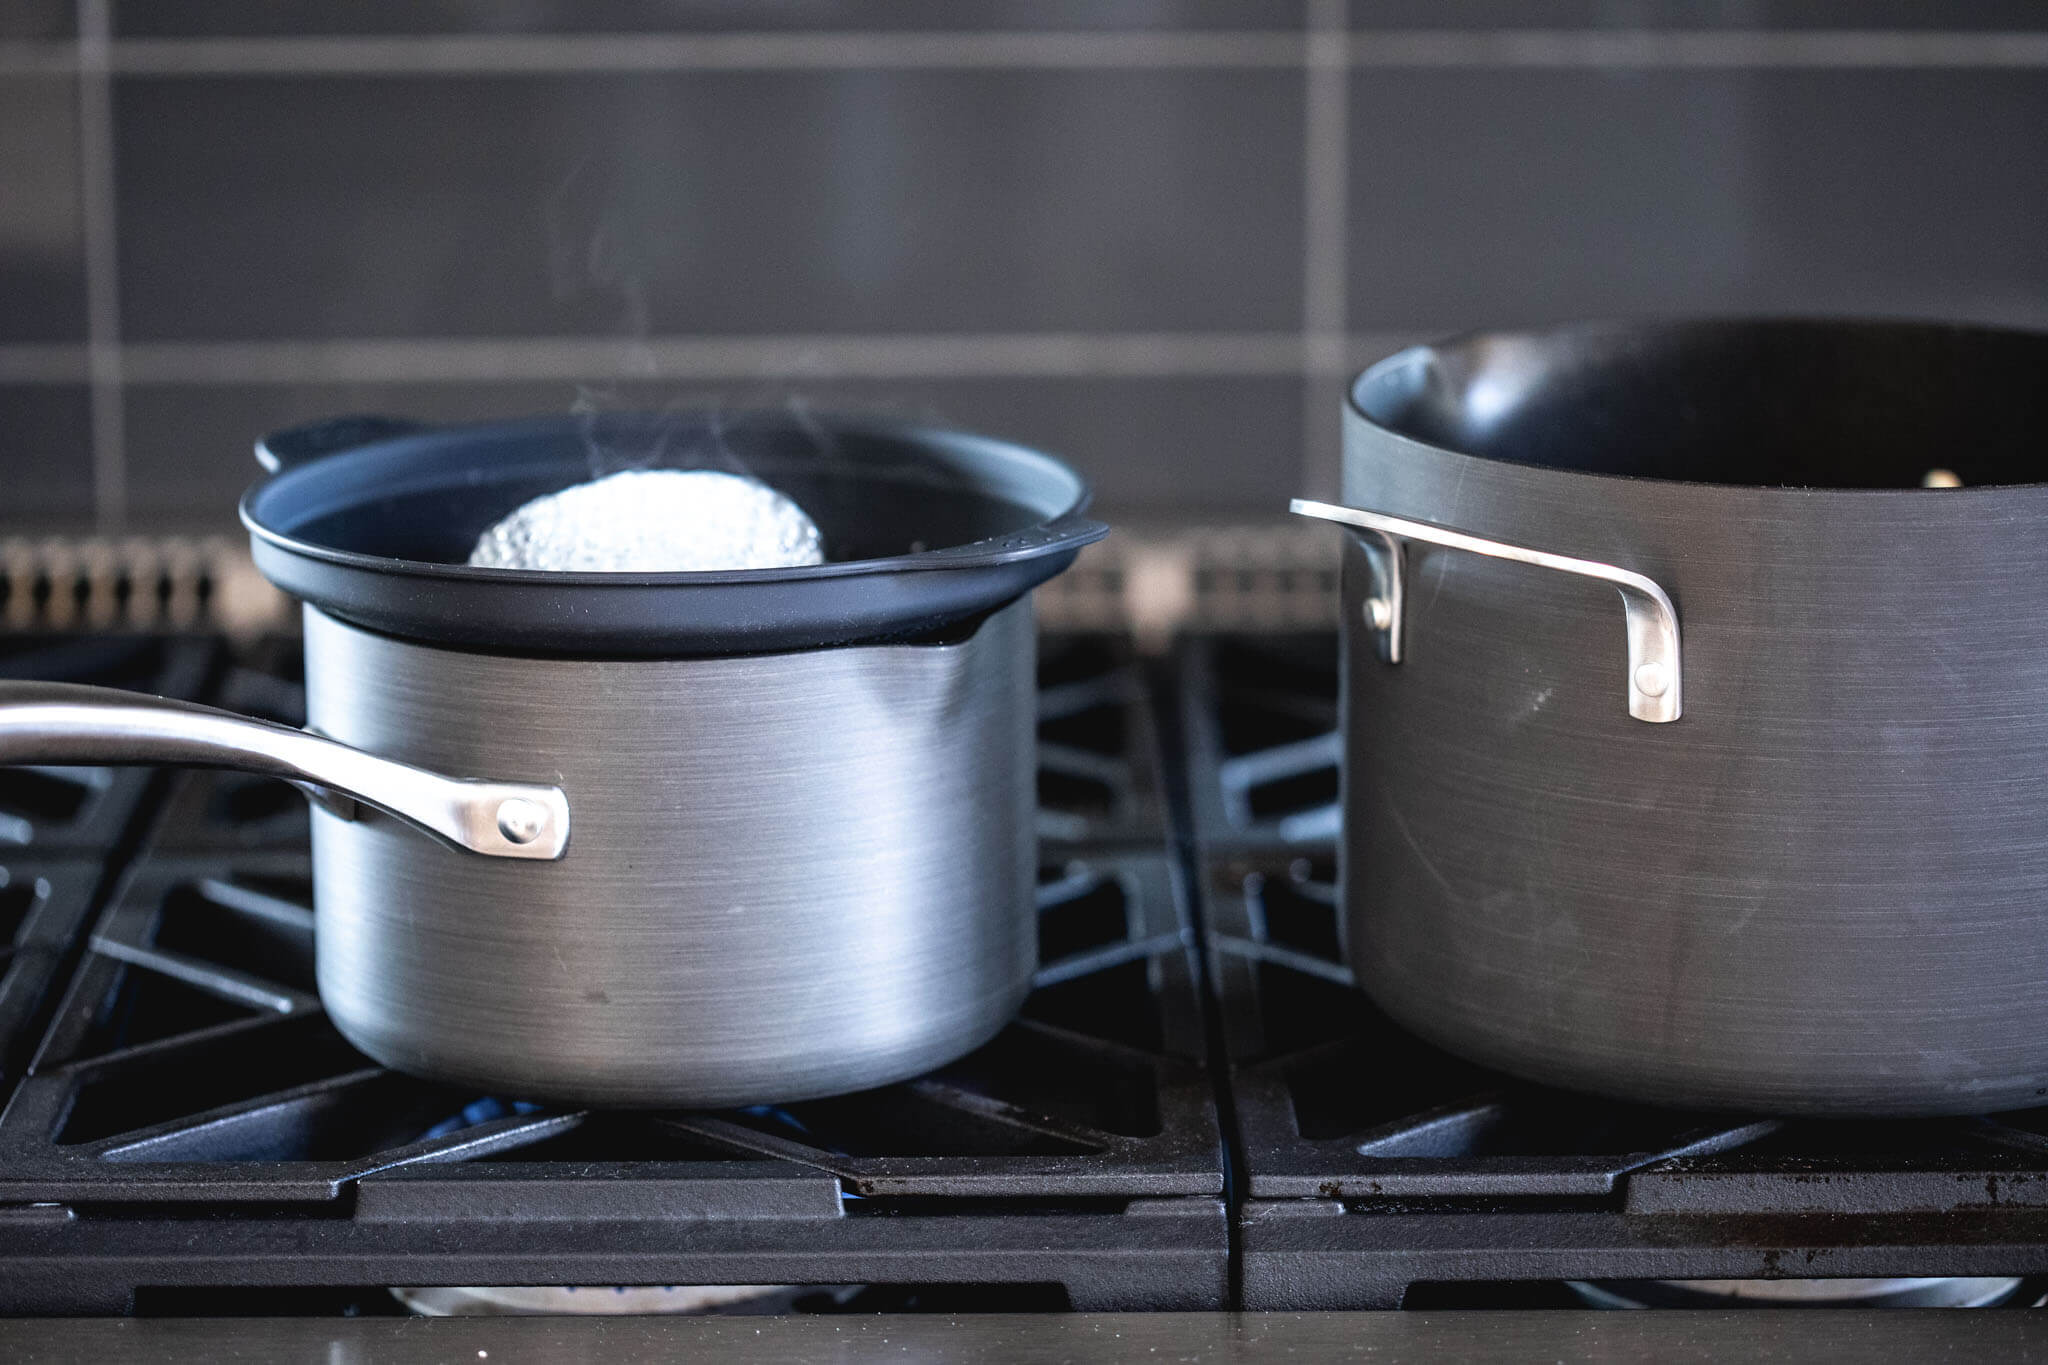 Two calphalon pots on gas stove